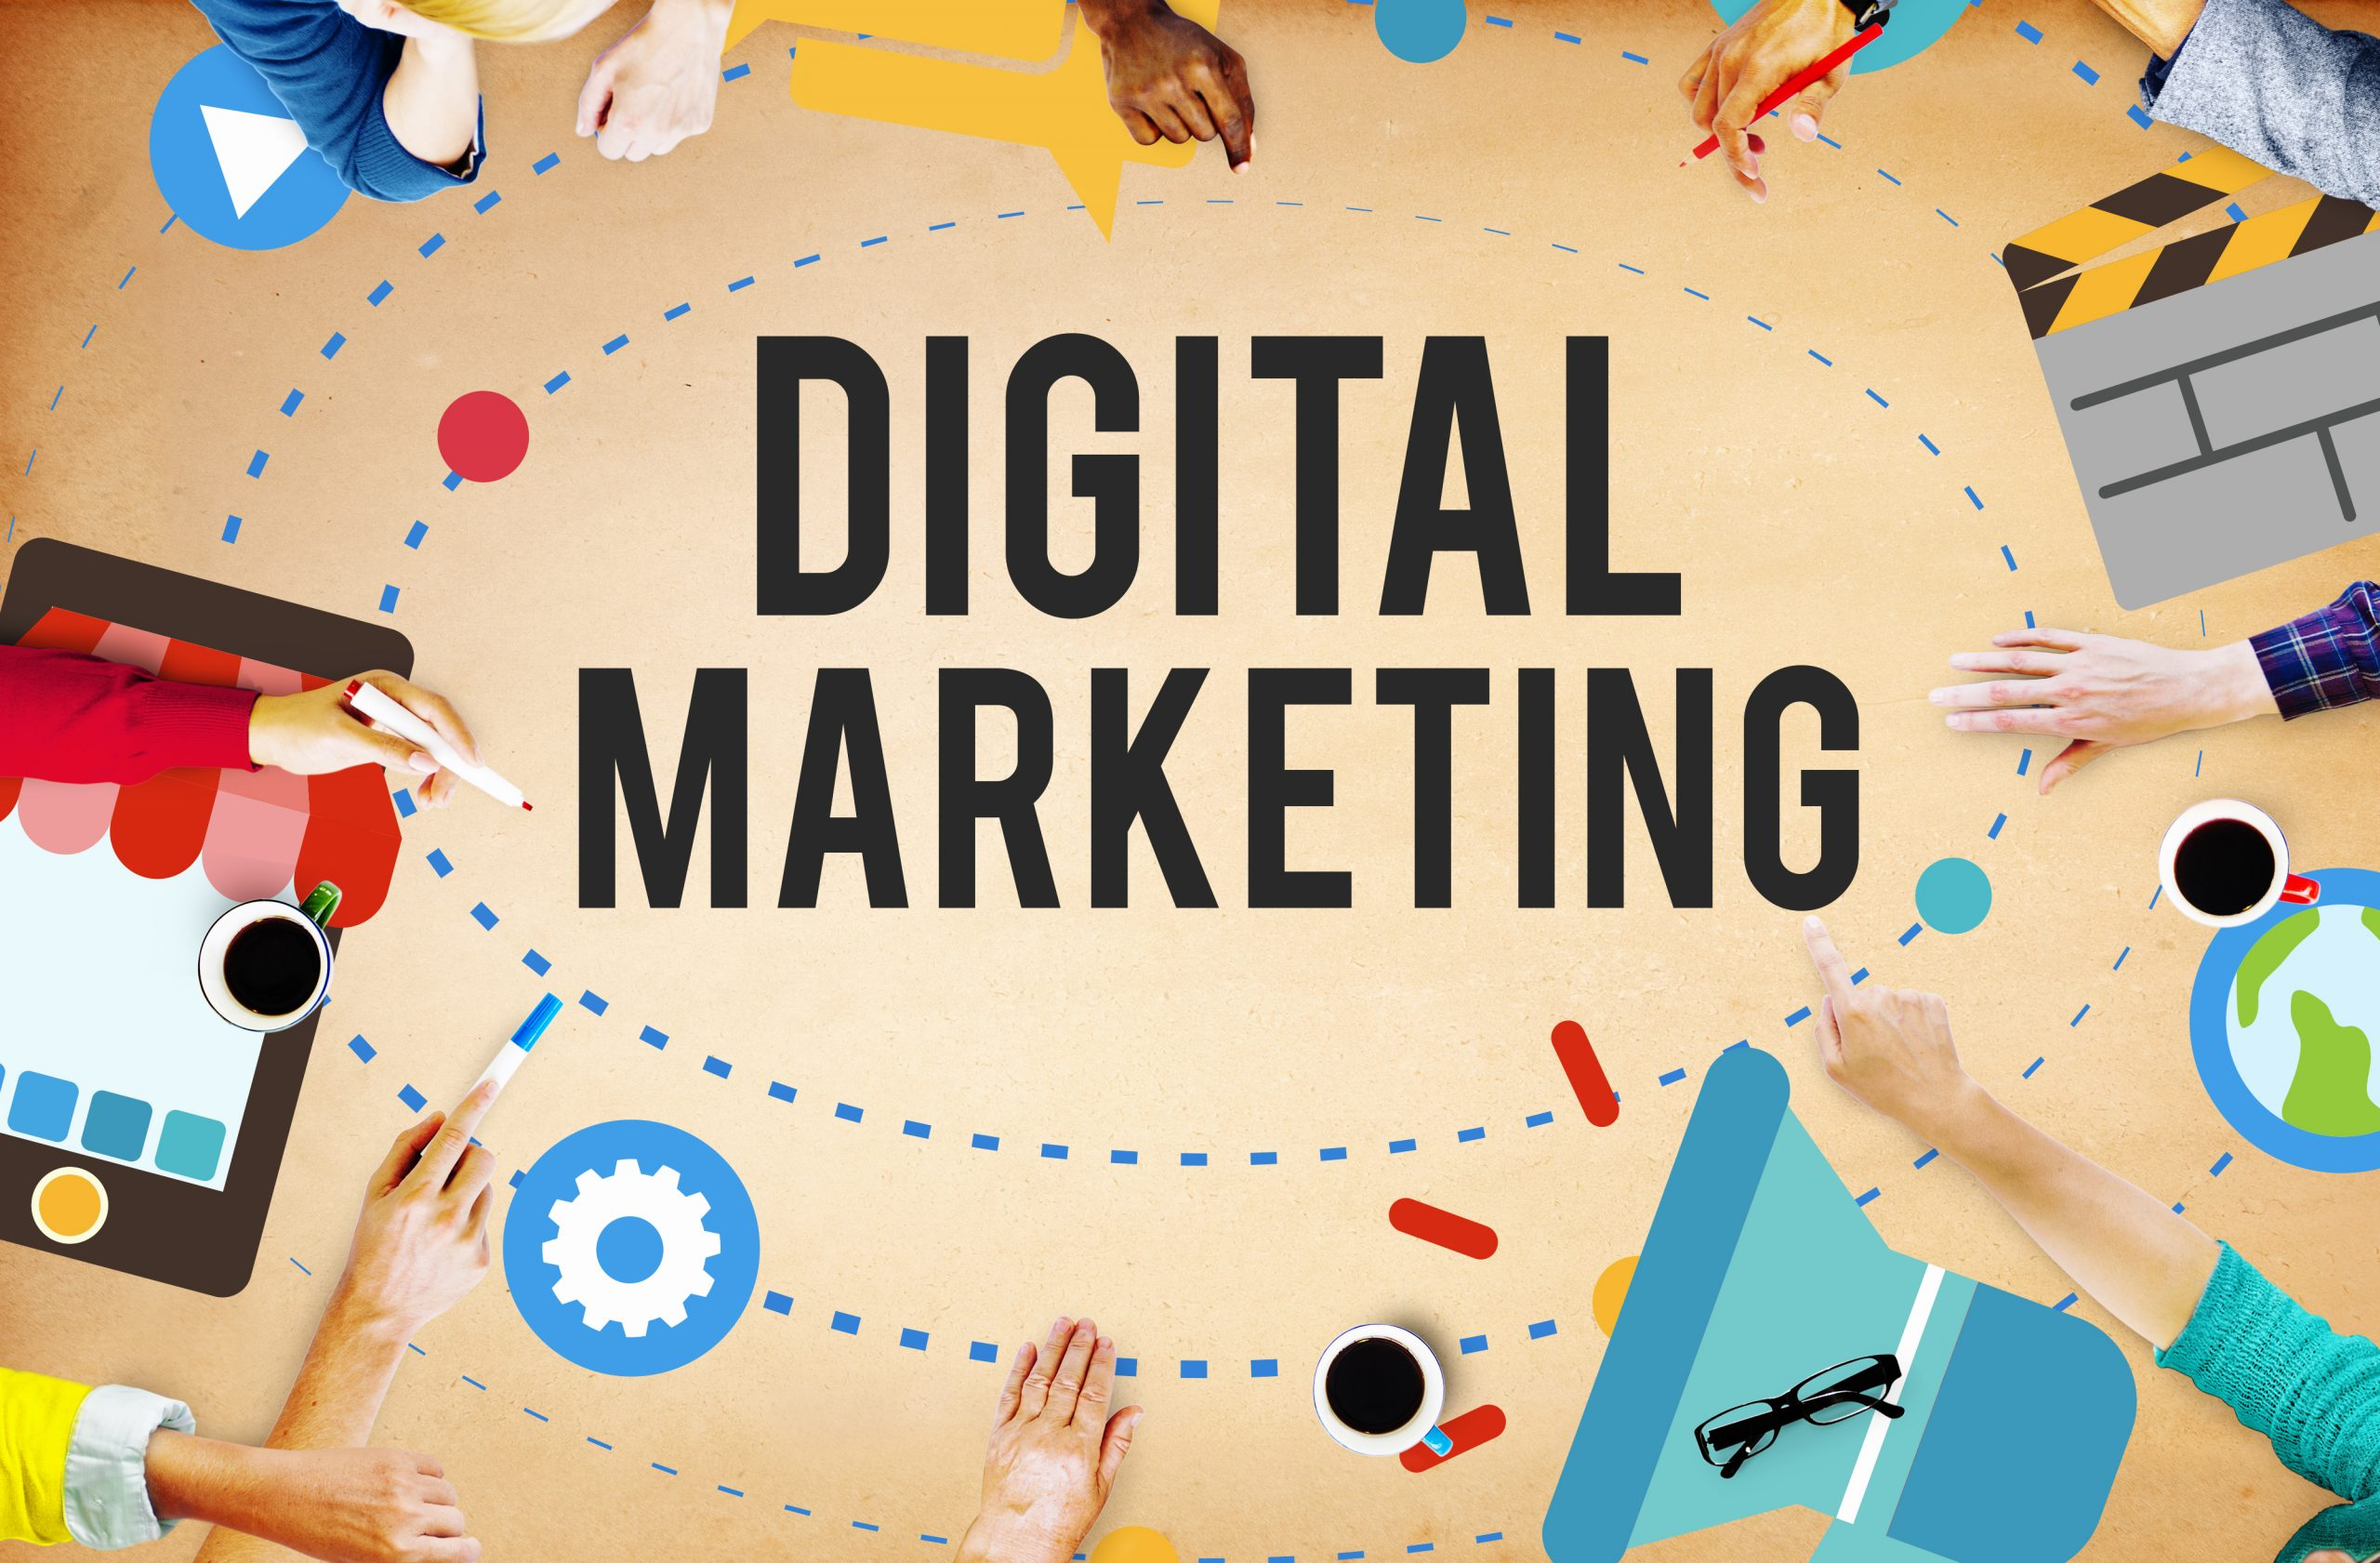 4 Ways Businesses Can Analyze Their Digital Marketing Campaigns